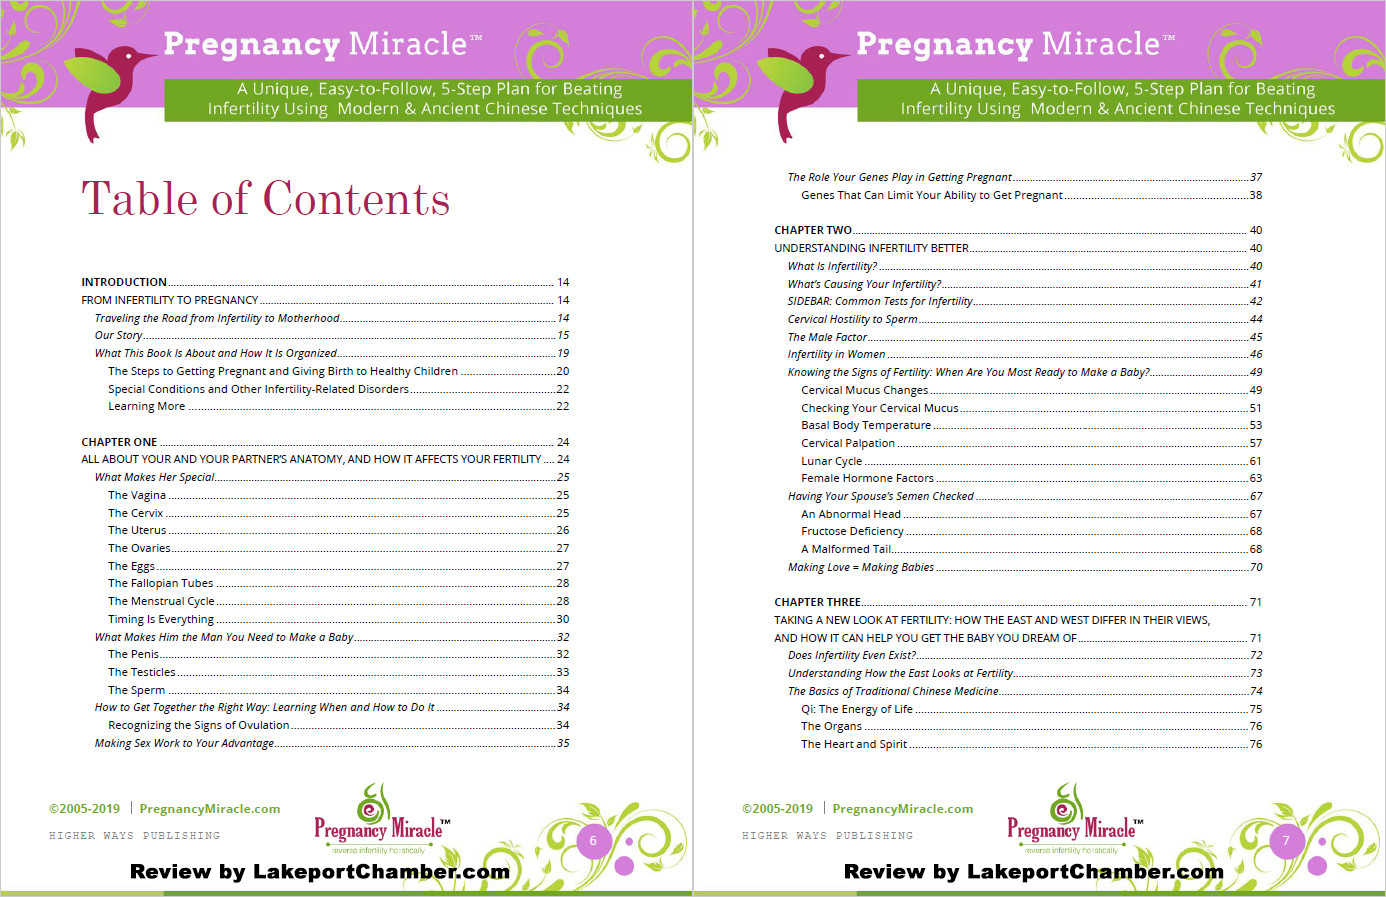 Pregnancy Miracle Table of Contents